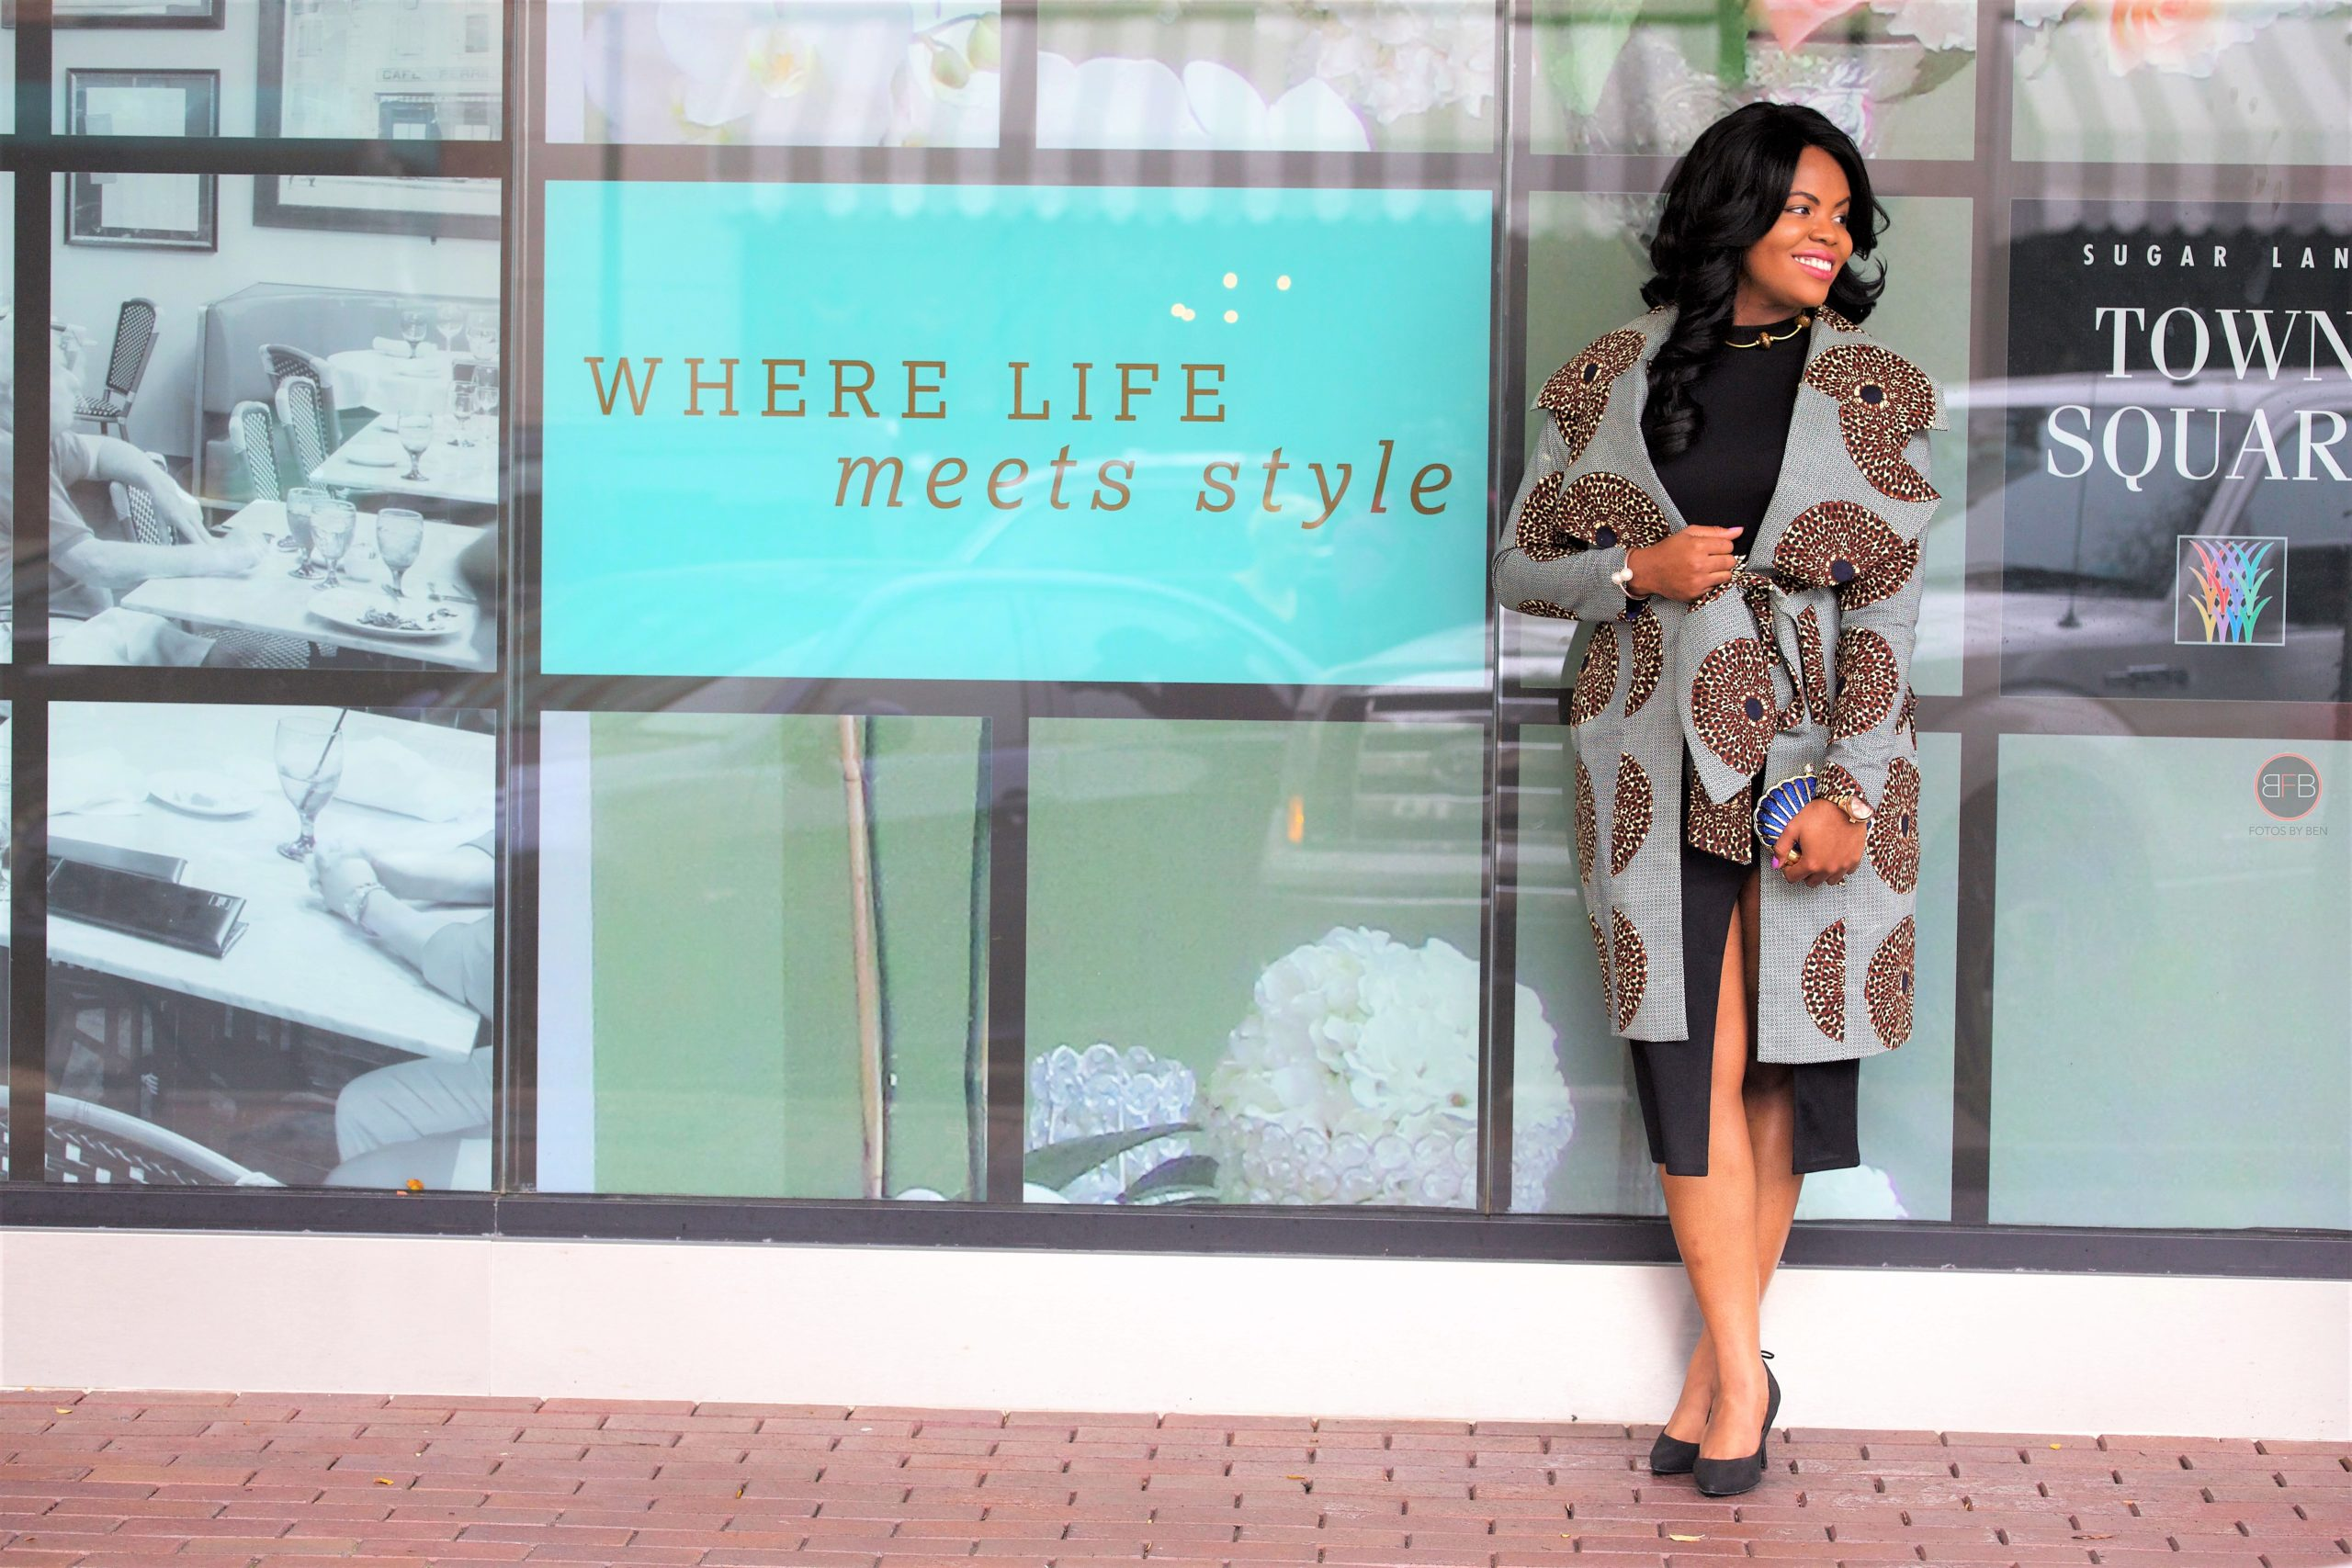 Chigi's World LBD + African Print Coat 3reecs Chic Creations and Collections Trench Coat Black Asos Dress Ross Lace-up Pumps Charming Charlie Gold Pearl Bracelet Michael Kors Watch Beaded Choker Necklace Leaves Belt Shell Clutch Purse